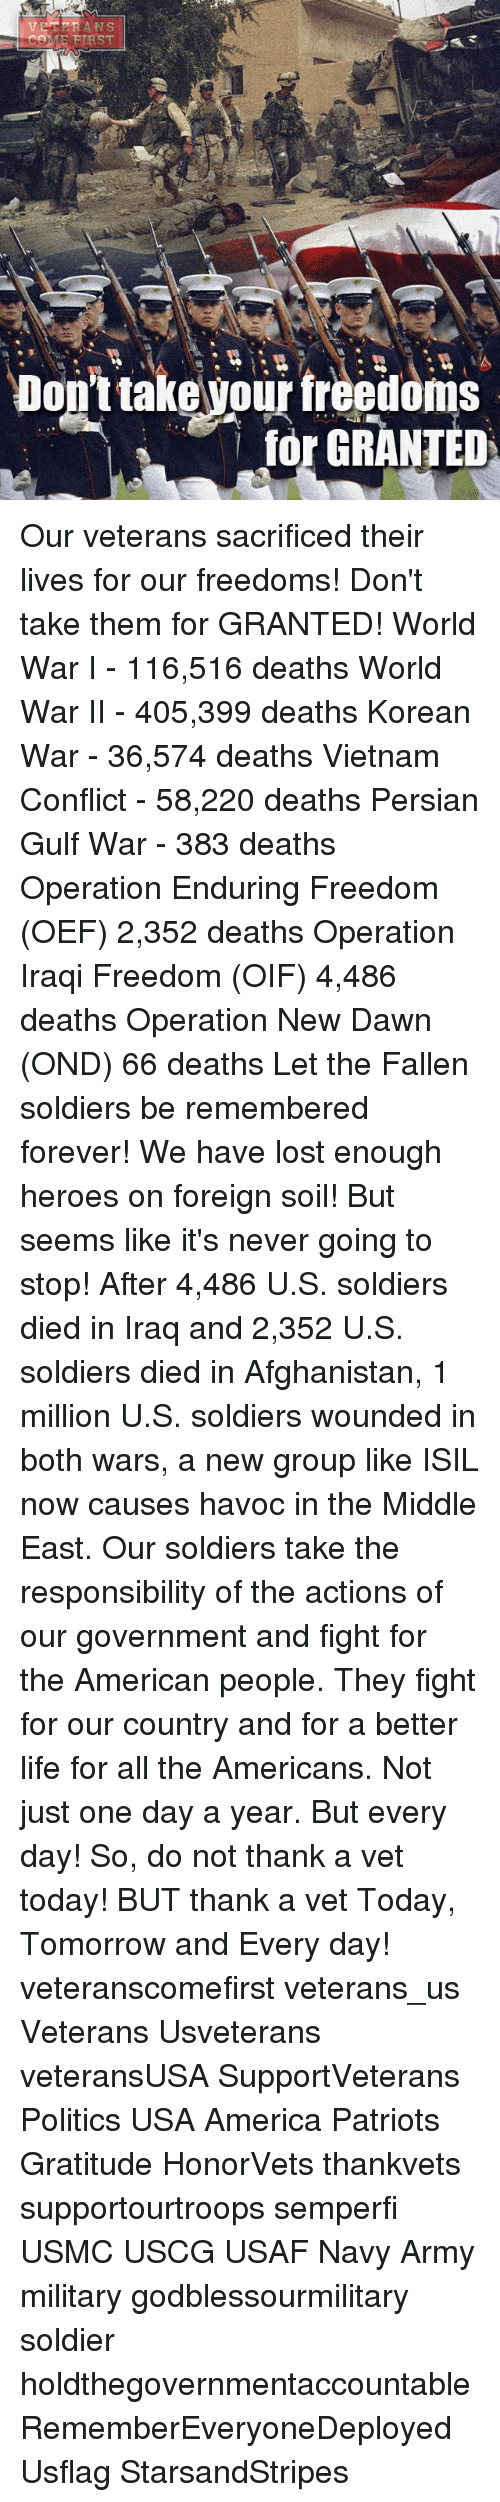 foreverly: ANS  TER  OME RTRST  Don't takevour freedoms  for GRANTED Our veterans sacrificed their lives for our freedoms! Don't take them for GRANTED! World War I - 116,516 deaths World War II - 405,399 deaths Korean War - 36,574 deaths Vietnam Conflict - 58,220 deaths Persian Gulf War - 383 deaths Operation Enduring Freedom (OEF) 2,352 deaths Operation Iraqi Freedom (OIF) 4,486 deaths Operation New Dawn (OND) 66 deaths Let the Fallen soldiers be remembered forever! We have lost enough heroes on foreign soil! But seems like it's never going to stop! After 4,486 U.S. soldiers died in Iraq and 2,352 U.S. soldiers died in Afghanistan, 1 million U.S. soldiers wounded in both wars, a new group like ISIL now causes havoc in the Middle East. Our soldiers take the responsibility of the actions of our government and fight for the American people. They fight for our country and for a better life for all the Americans. Not just one day a year. But every day! So, do not thank a vet today! BUT thank a vet Today, Tomorrow and Every day! veteranscomefirst veterans_us Veterans Usveterans veteransUSA SupportVeterans Politics USA America Patriots Gratitude HonorVets thankvets supportourtroops semperfi USMC USCG USAF Navy Army military godblessourmilitary soldier holdthegovernmentaccountable RememberEveryoneDeployed Usflag StarsandStripes